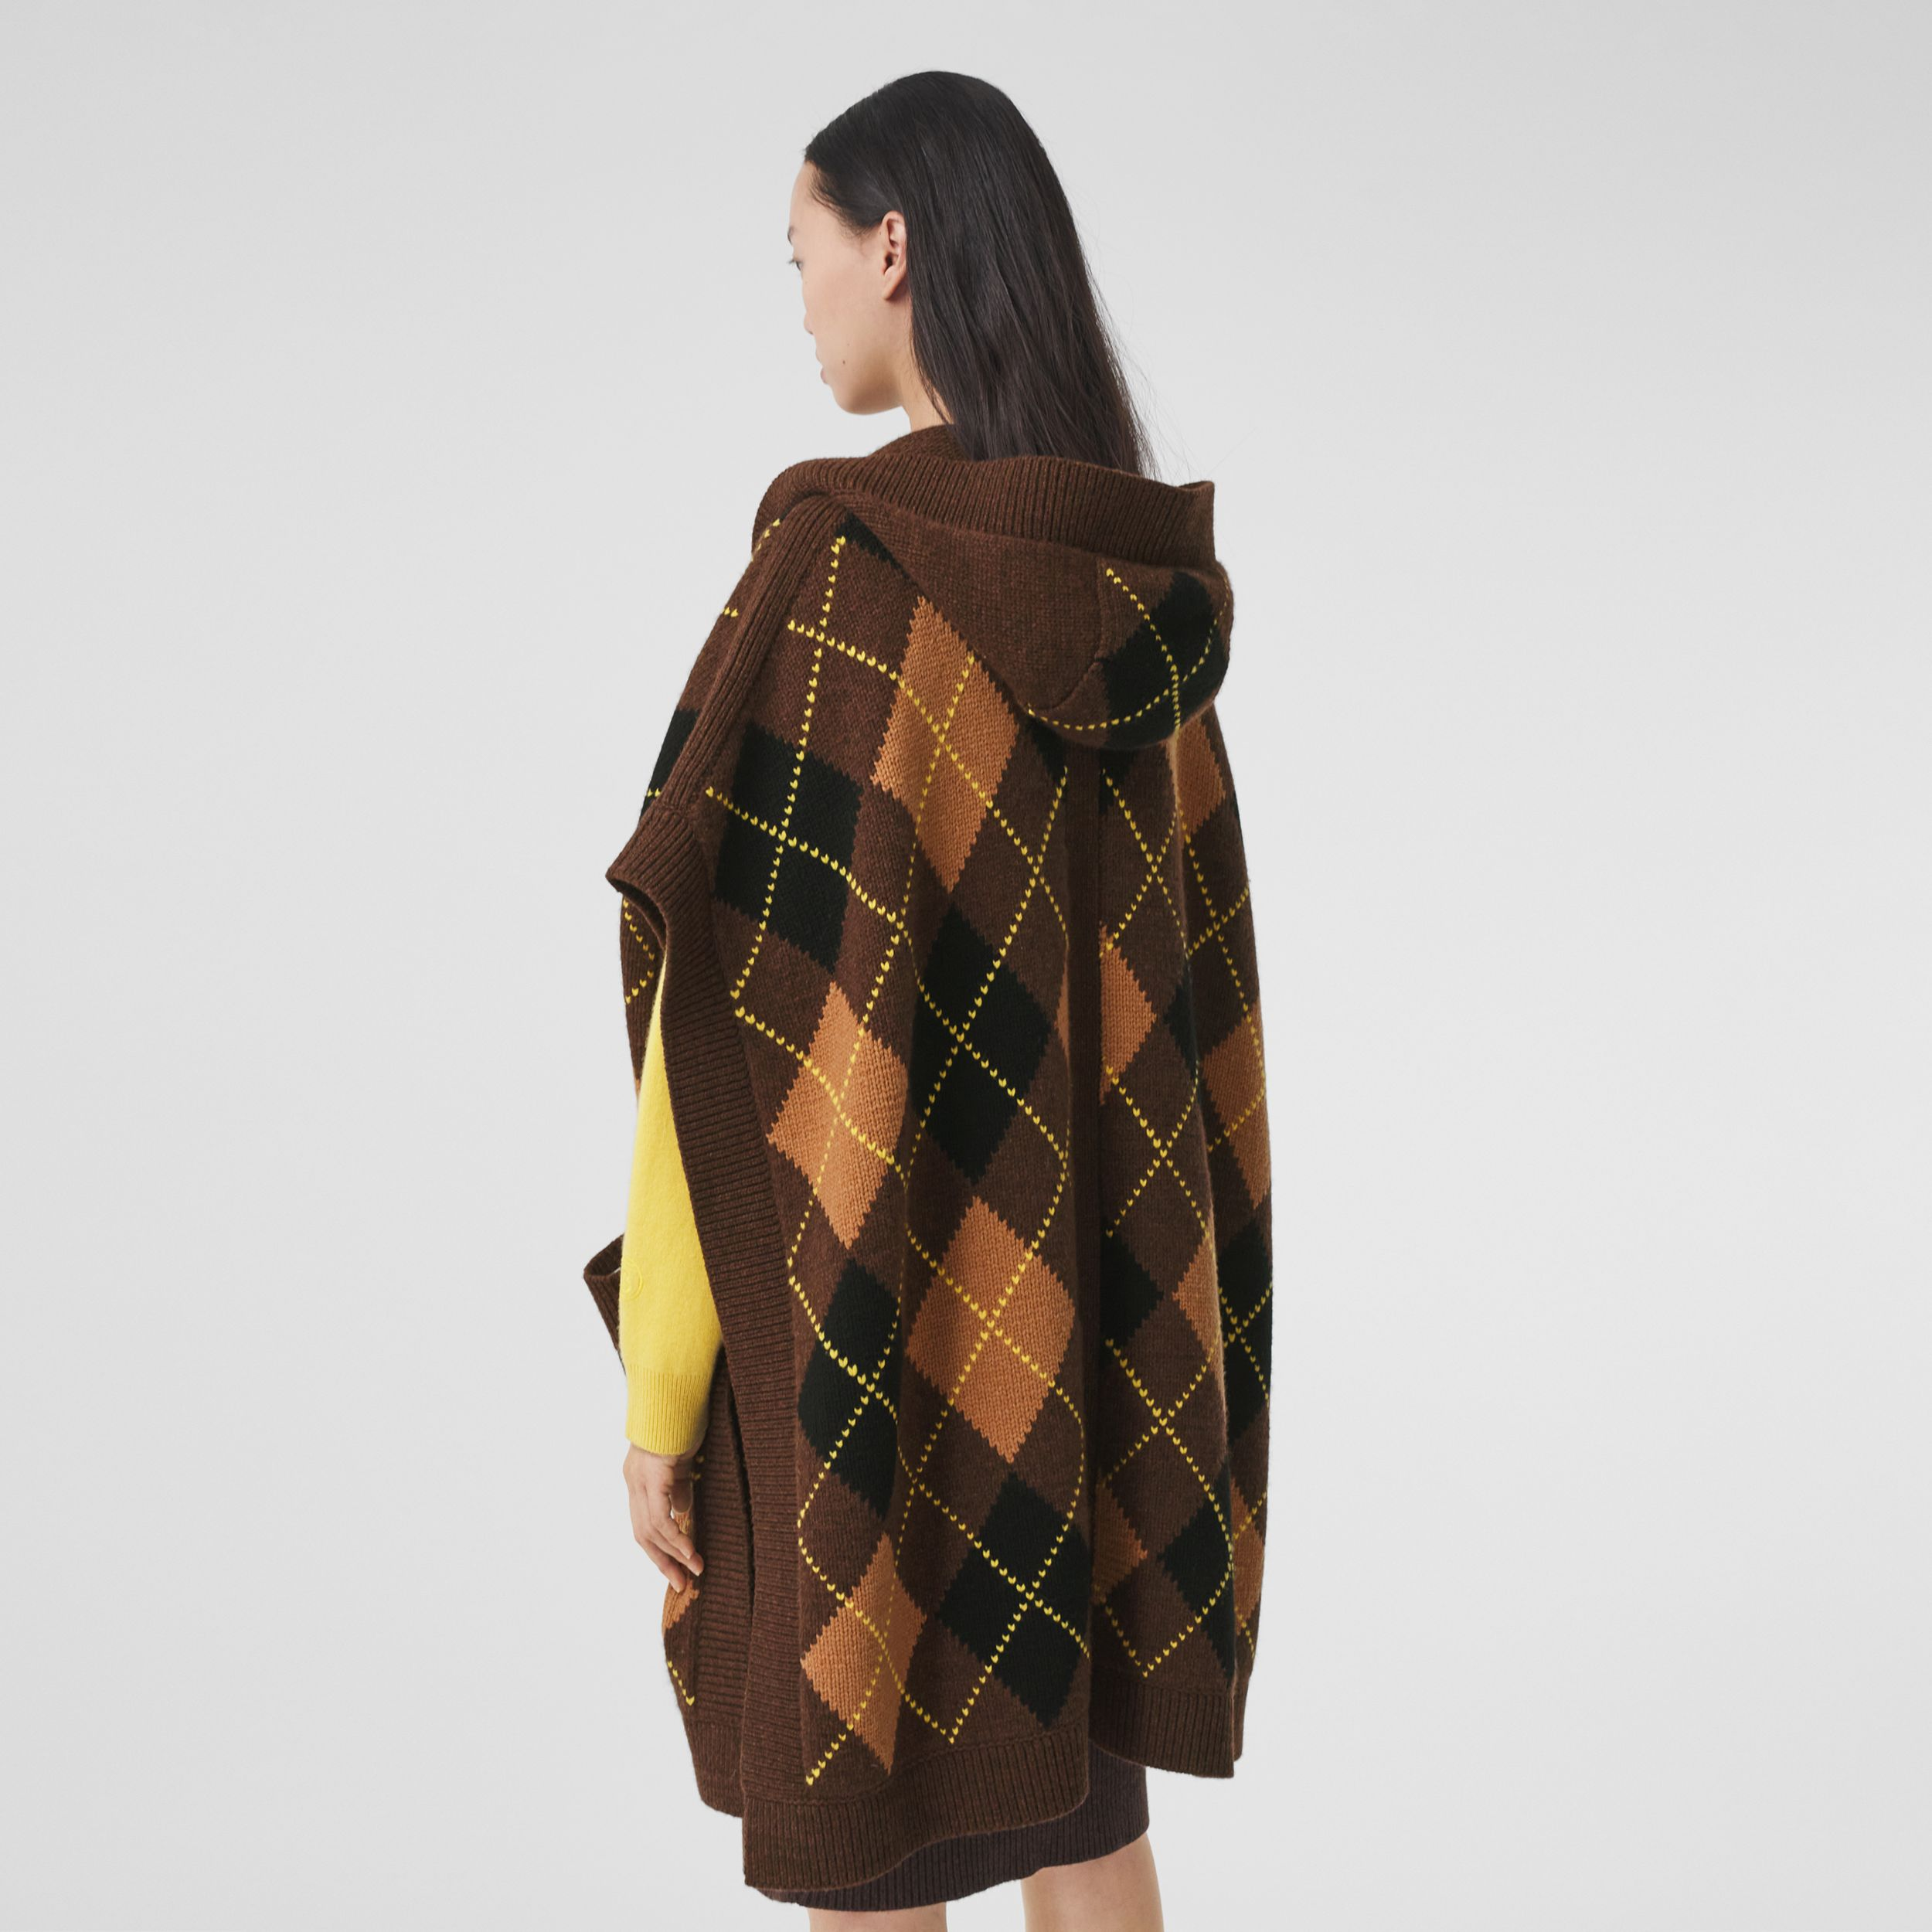 Argyle Intarsia Wool Cashmere Hooded Cape in Brown - Women | Burberry Hong Kong S.A.R. - 3